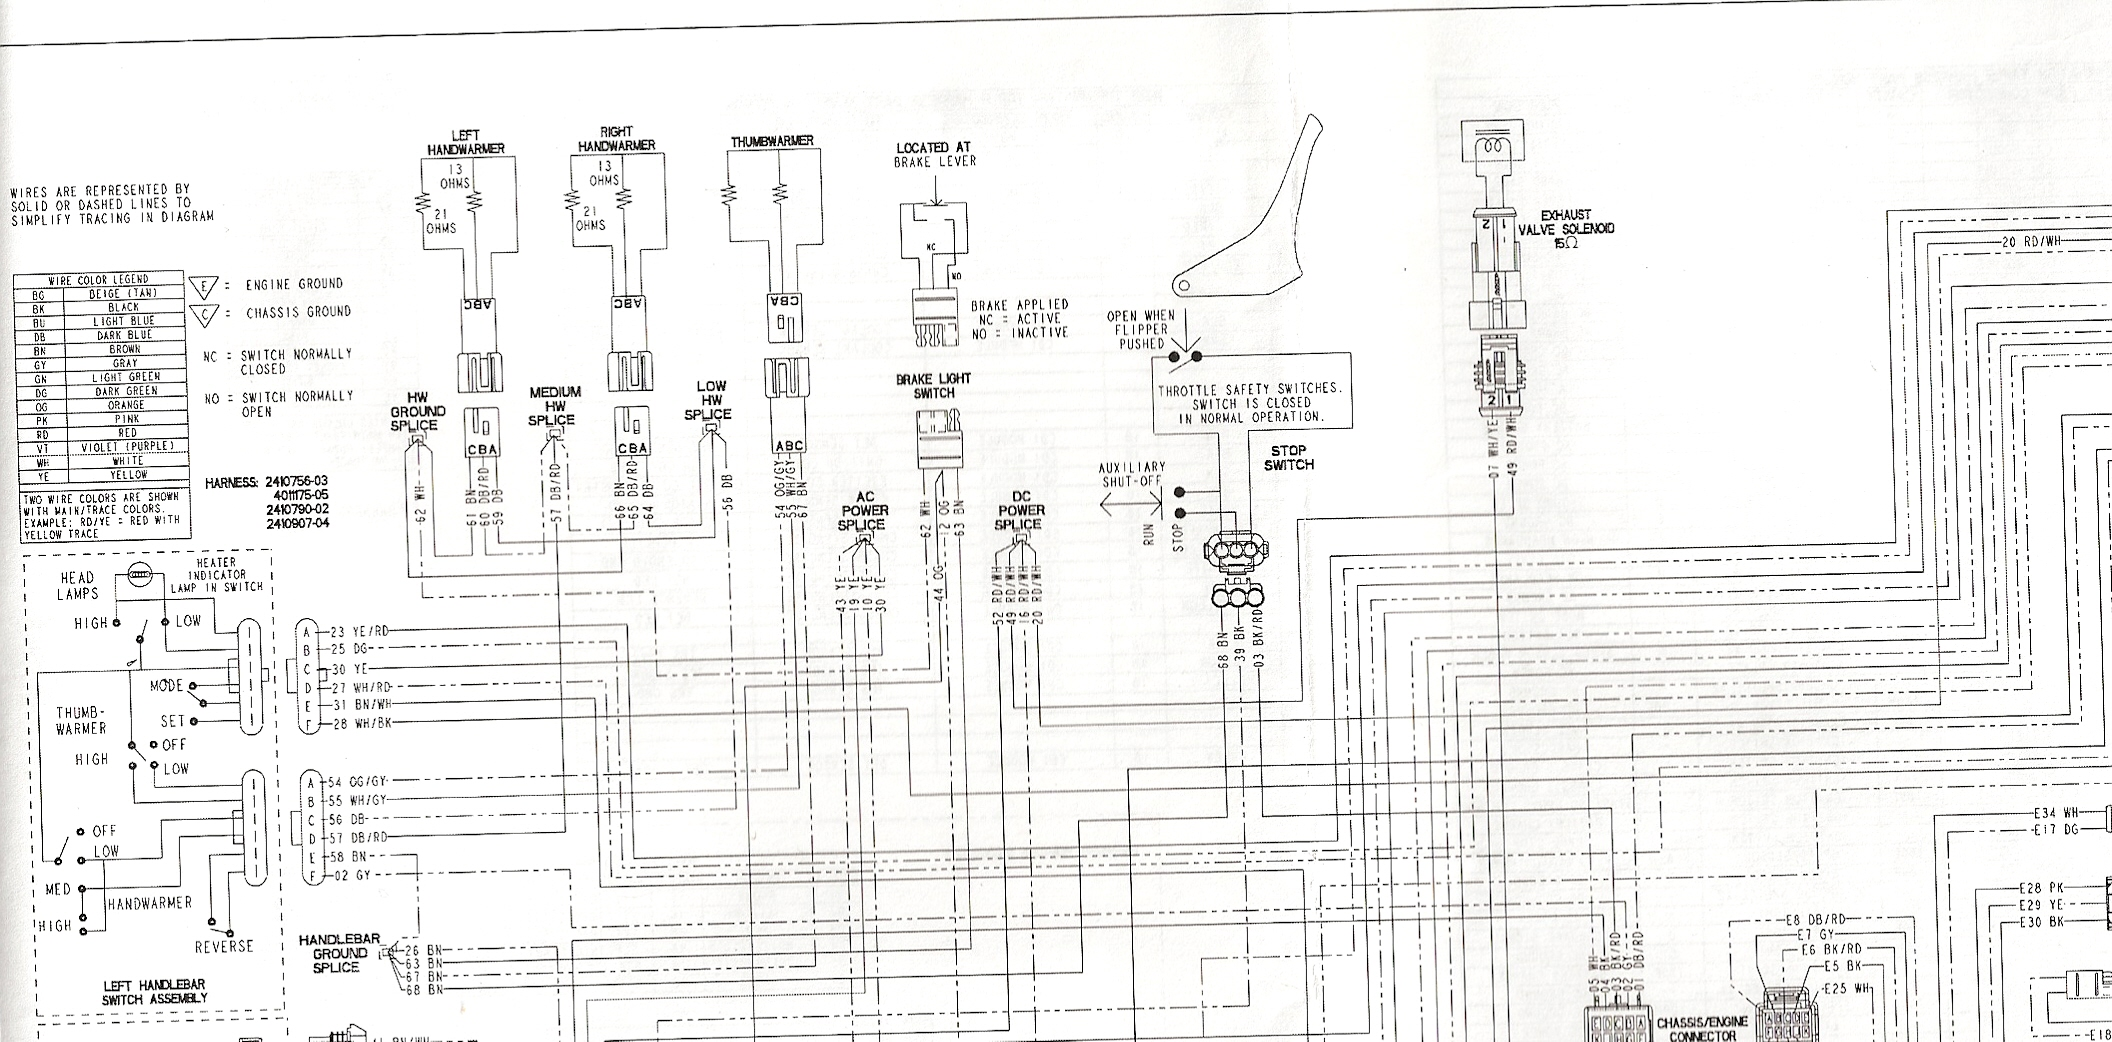 2010 Polaris Sportsman 500 Wiring Diagram Trusted Wiring Diagram 2004  Polaris Sportsman 400 Wiring Diagram 2011 Polaris Sportsman 500 Wiring  Diagram